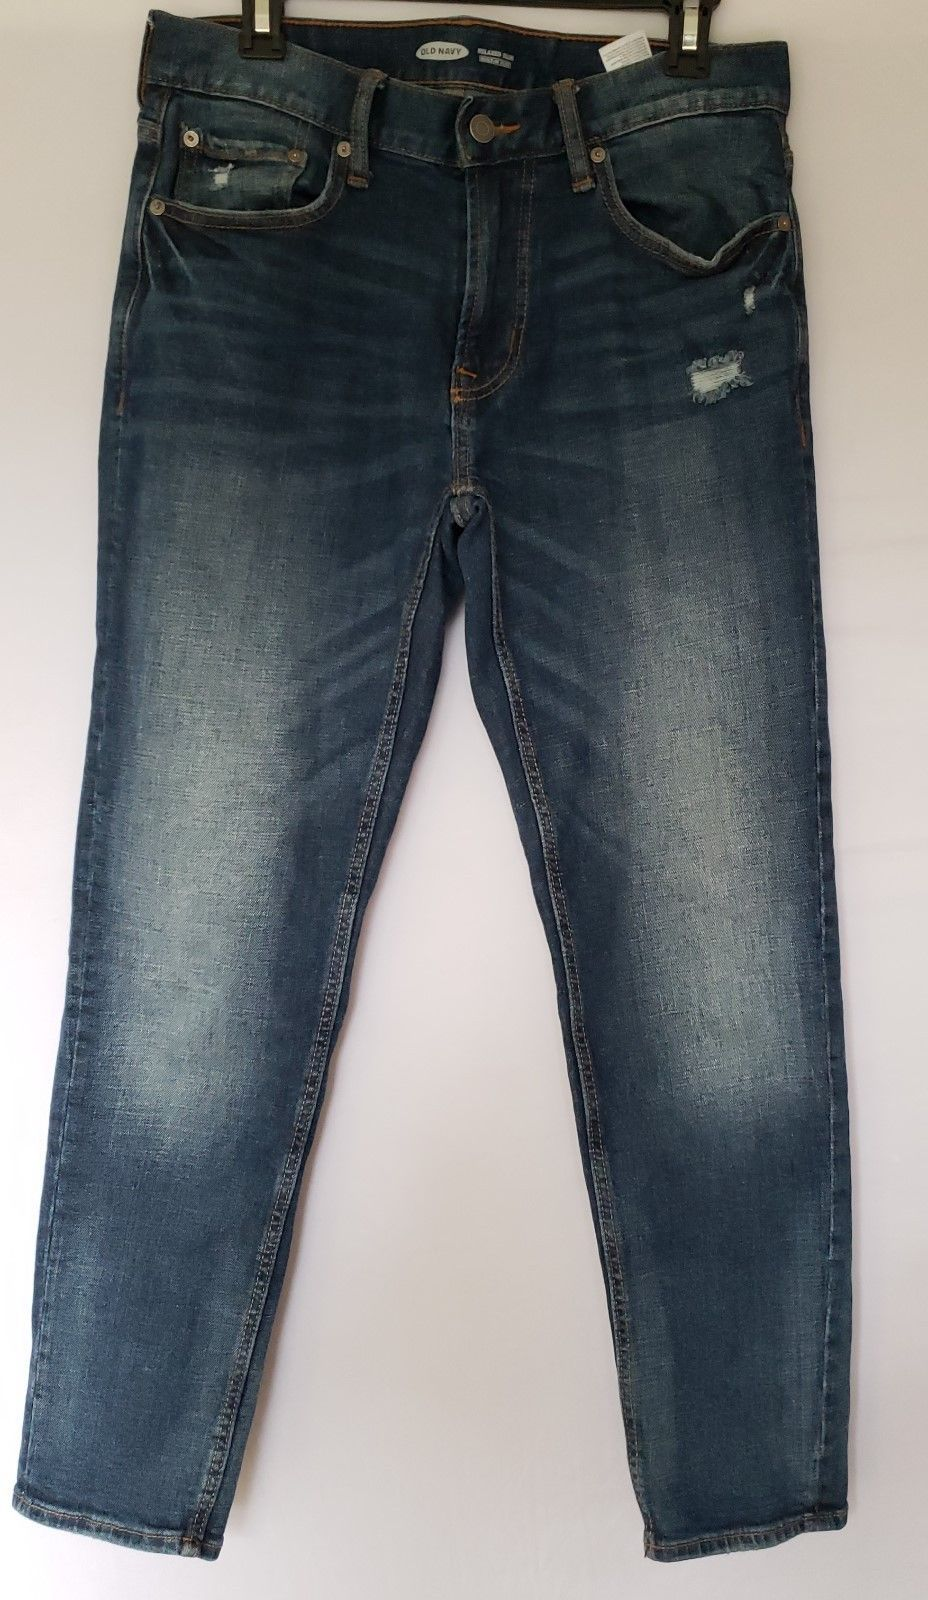 Old navy men s jeans relaxed slim 30x30 ripped color